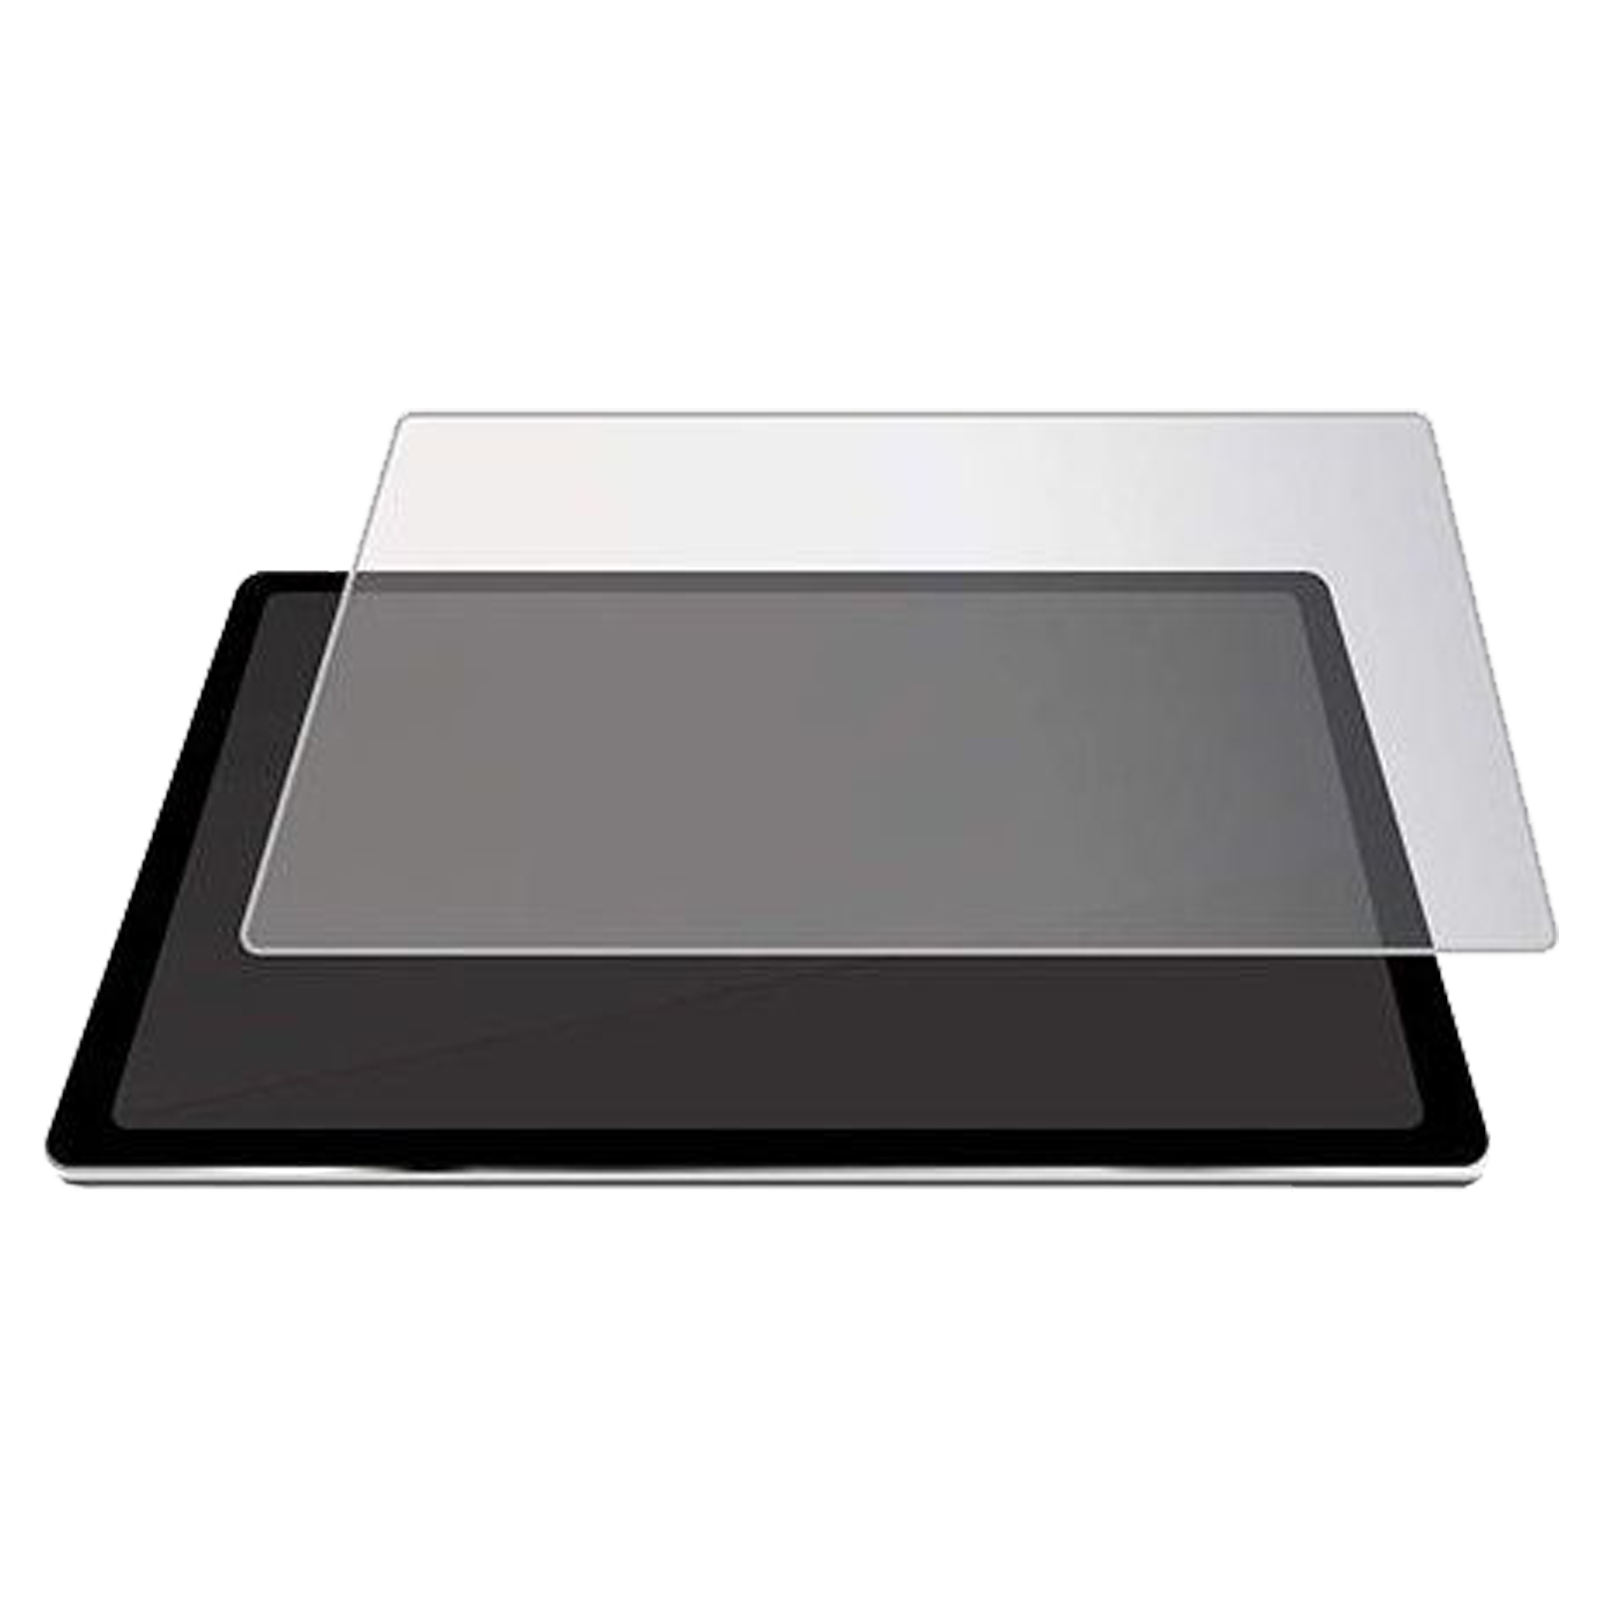 STM Screen Protector For Apple iPad Pro 11 Inch (Smooth Chamfered Edges, STM-233-241KZ-01, Clear)_1